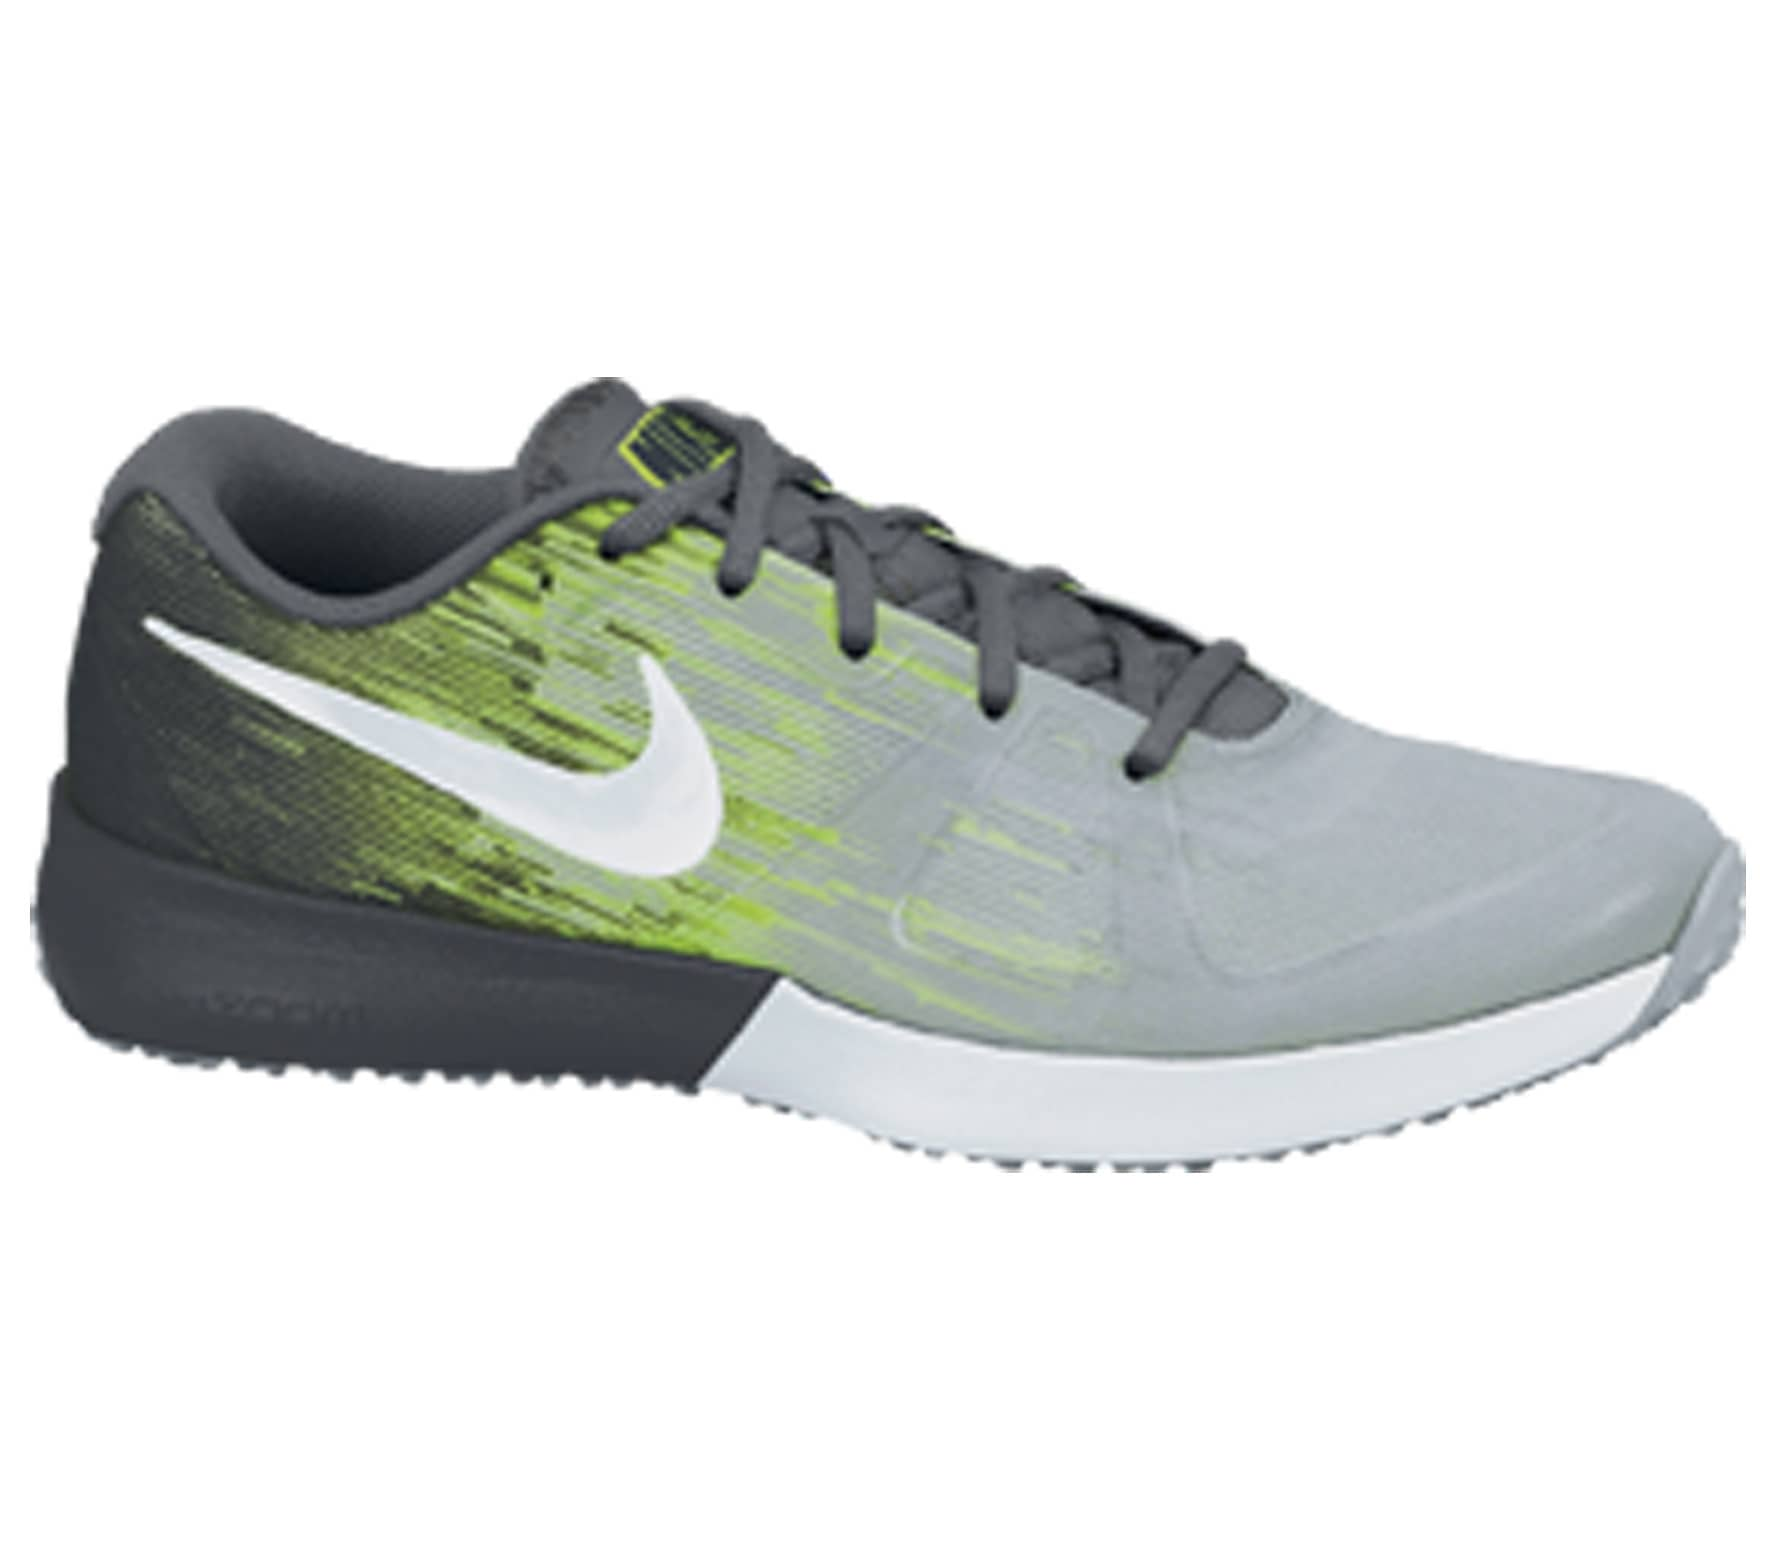 low priced a998d 81b7a Nike - Zoom Speed Trainer men s training shoes (grey green)